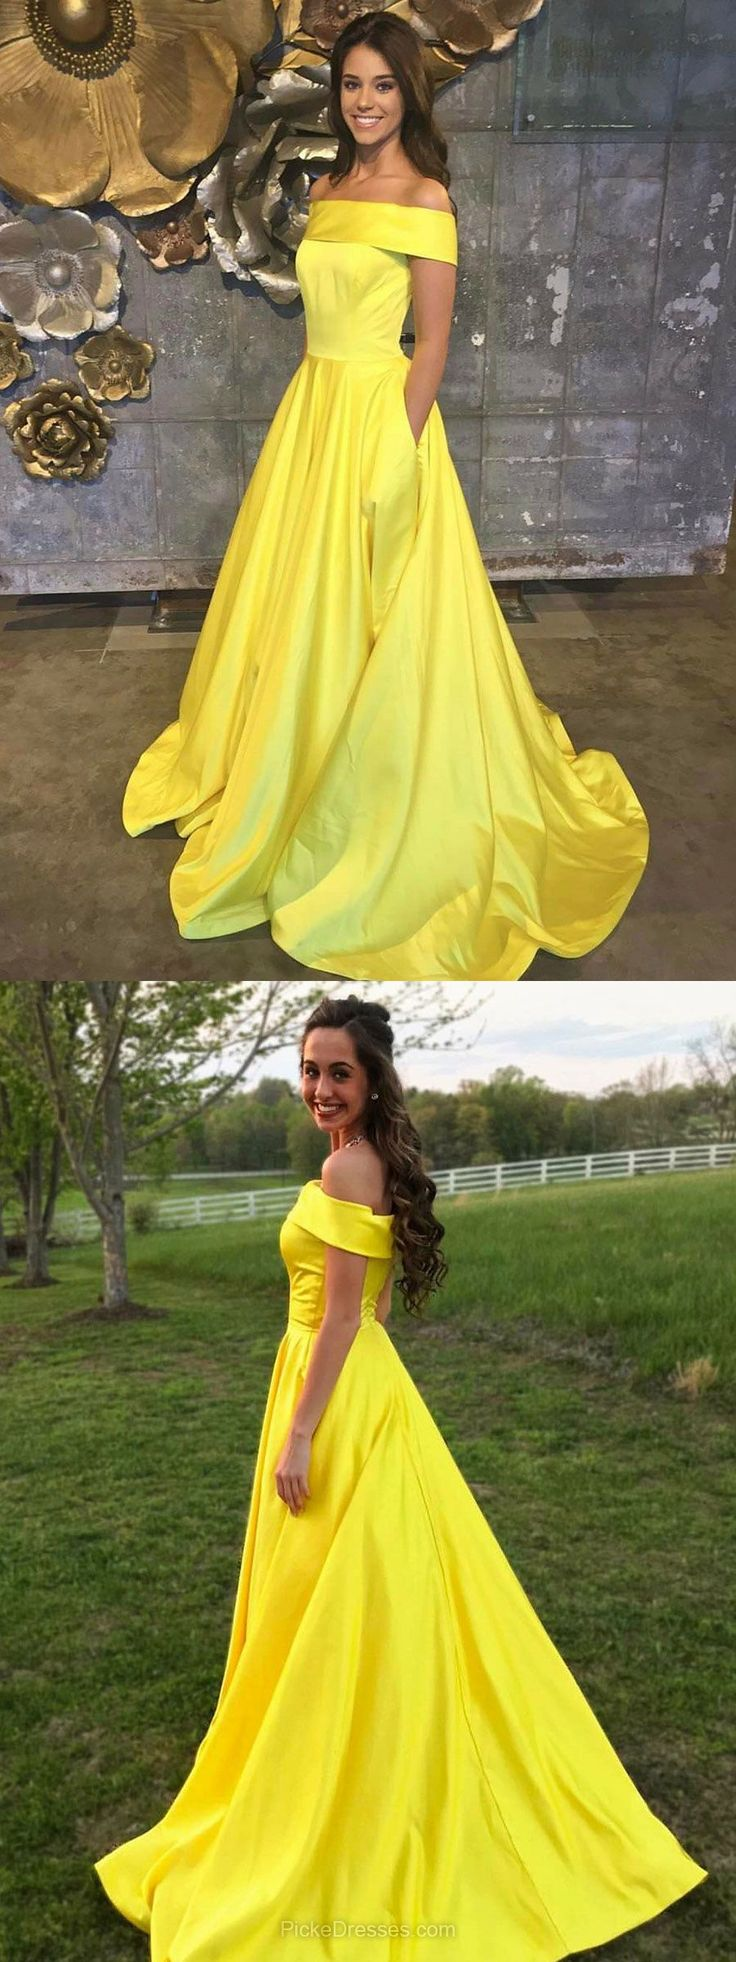 Yellow Prom Dresses, Long Prom Dresses For Teens, 2018 Prom Dresses Princess, Off-the-shoulder Prom Dresses Satin Pockets #dresses#style#borntowear